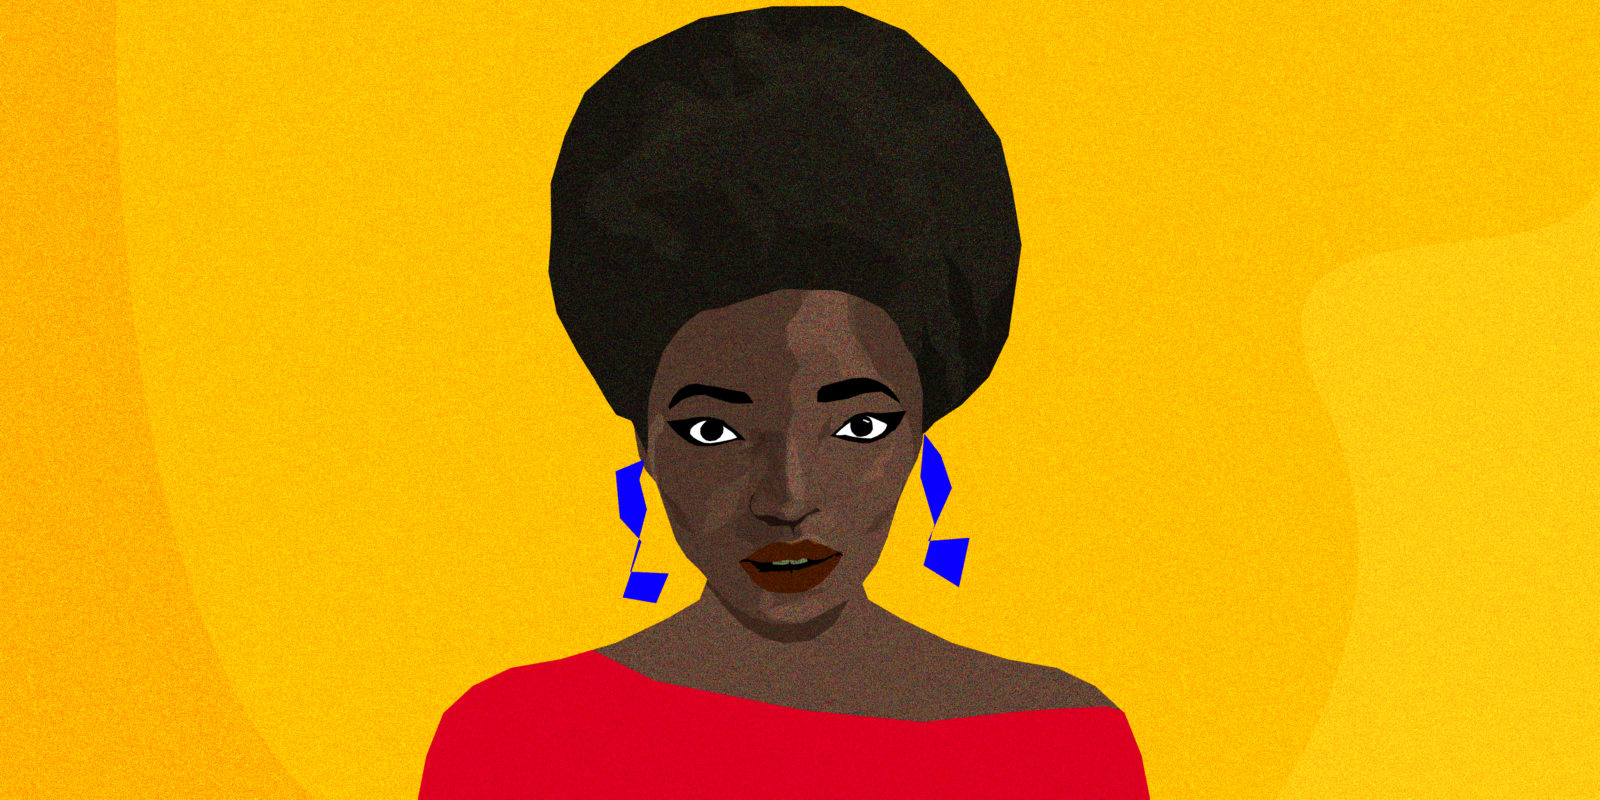 As an Afro-Latinx woman, my homecomings in Nigeria and Miami reinforce the pain of diaspora